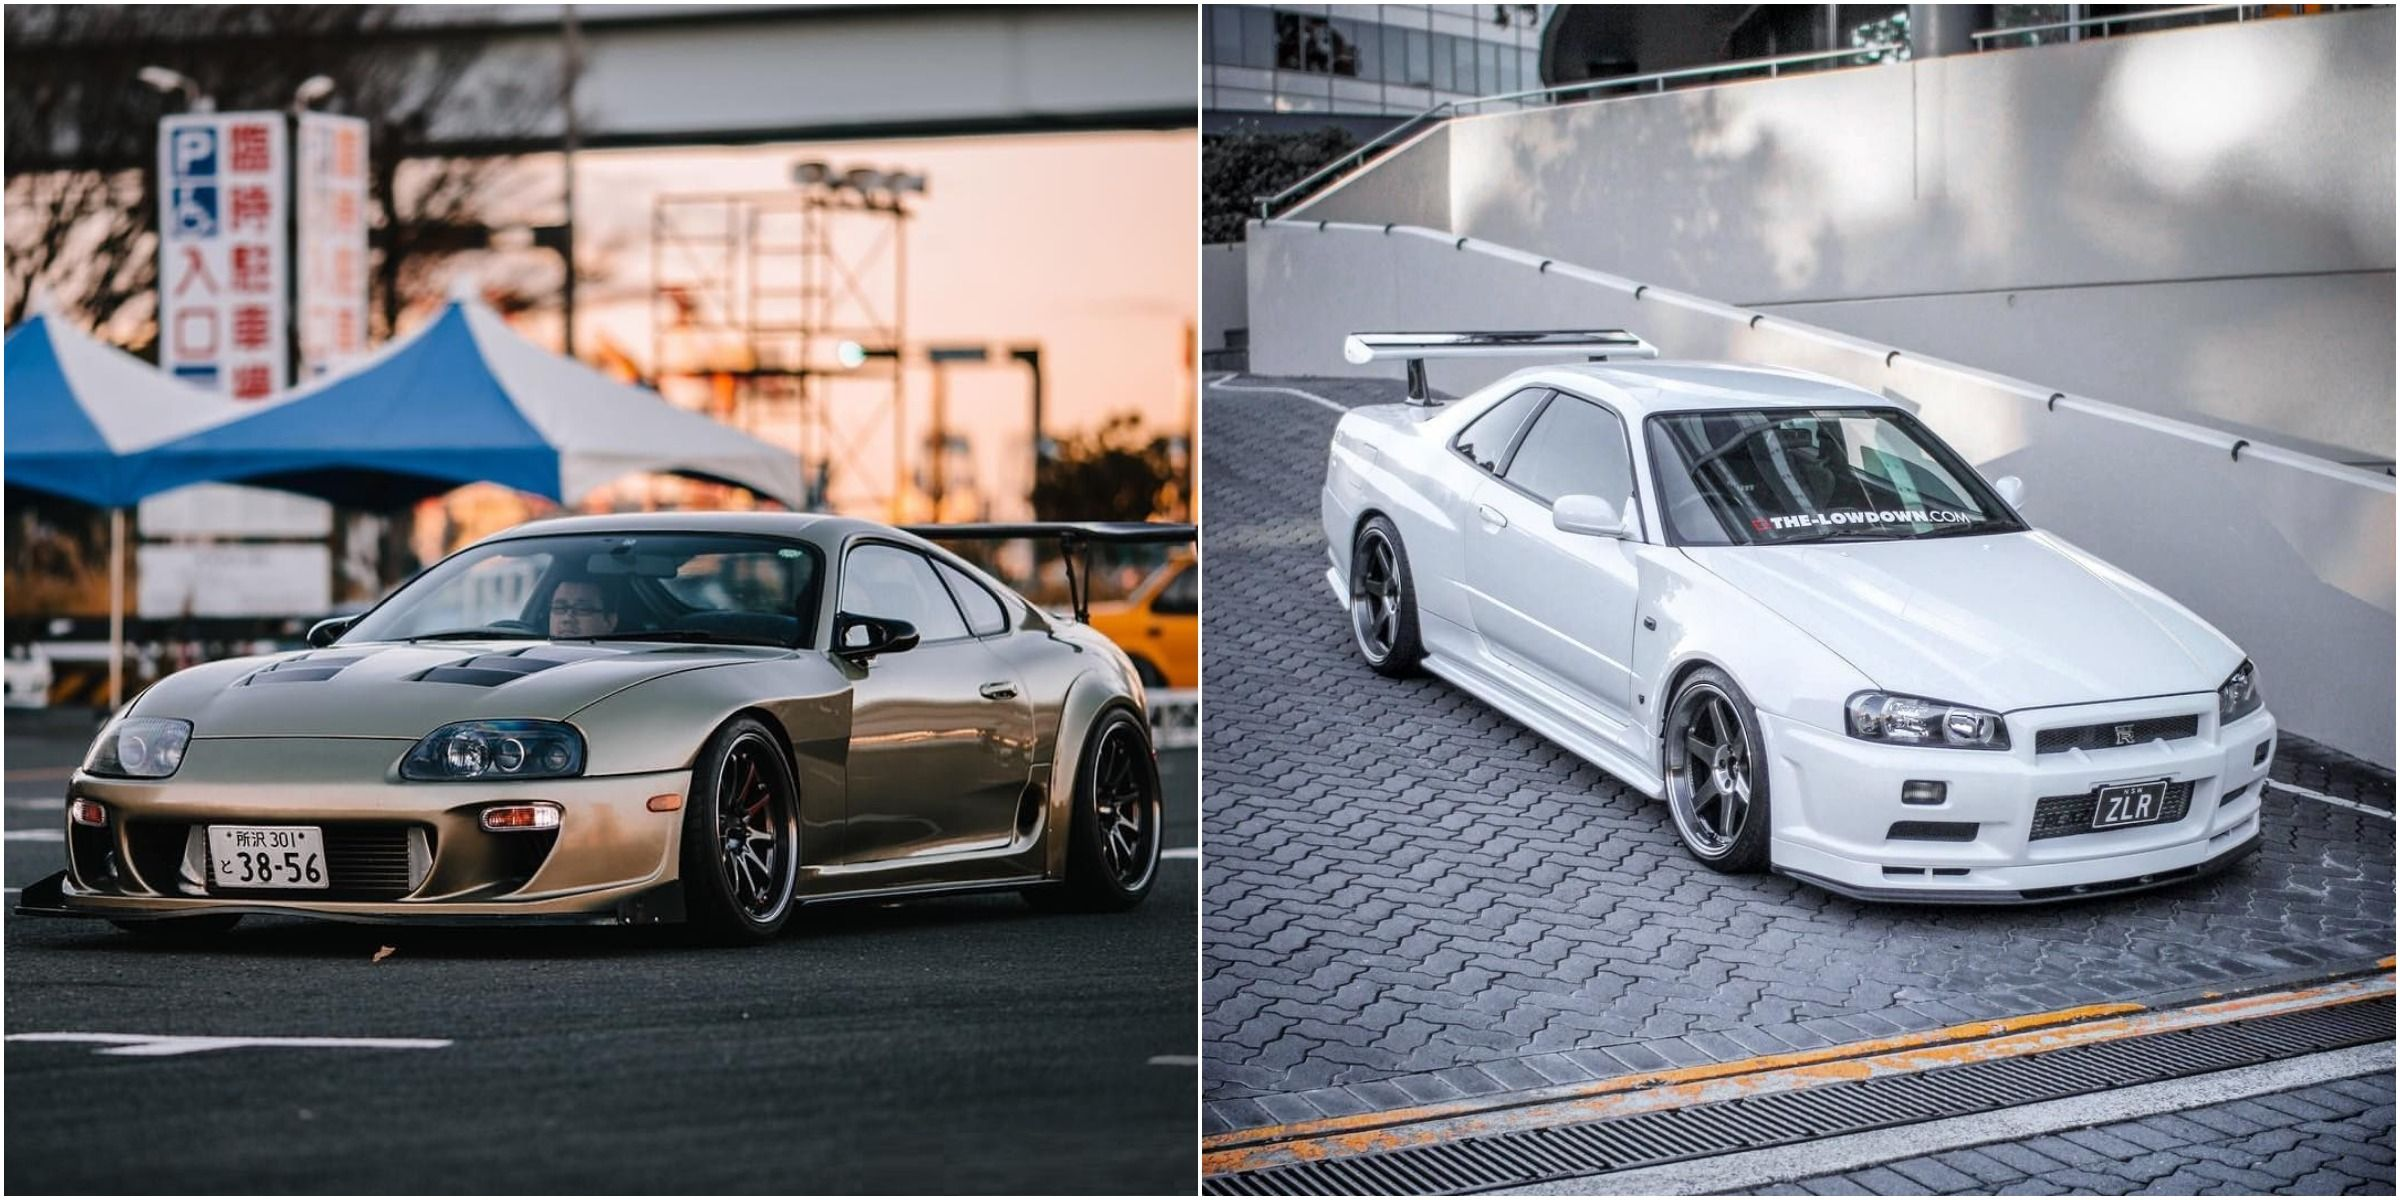 10 JDM Cars That You Absolutely Have To Modify (5 You